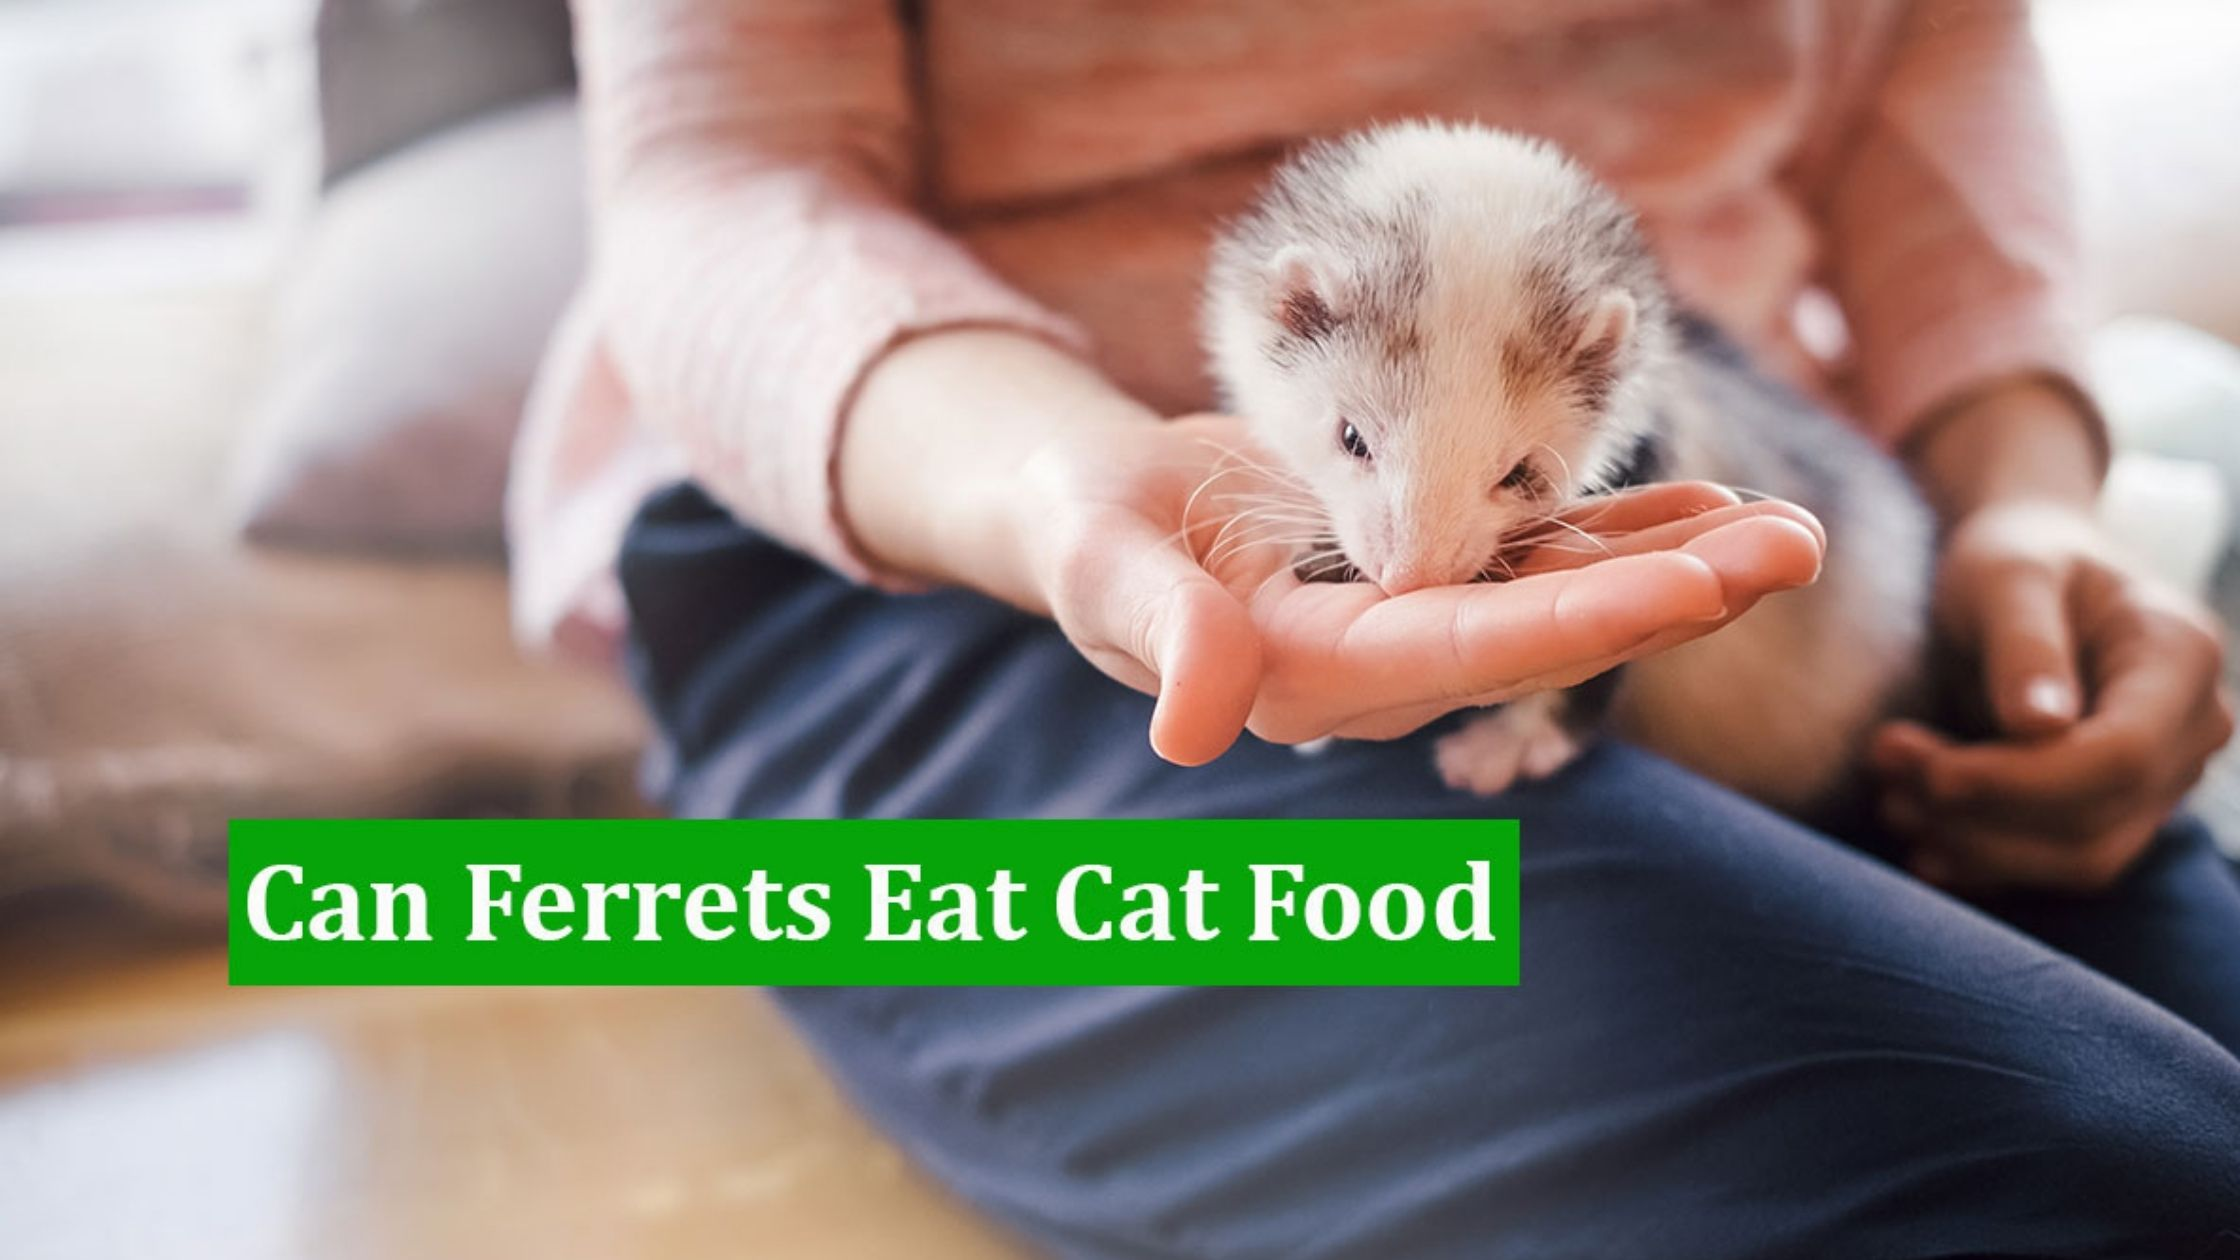 The Best Cat Food For Ferrets | What Do Ferrets Eat? | Feeding Guide